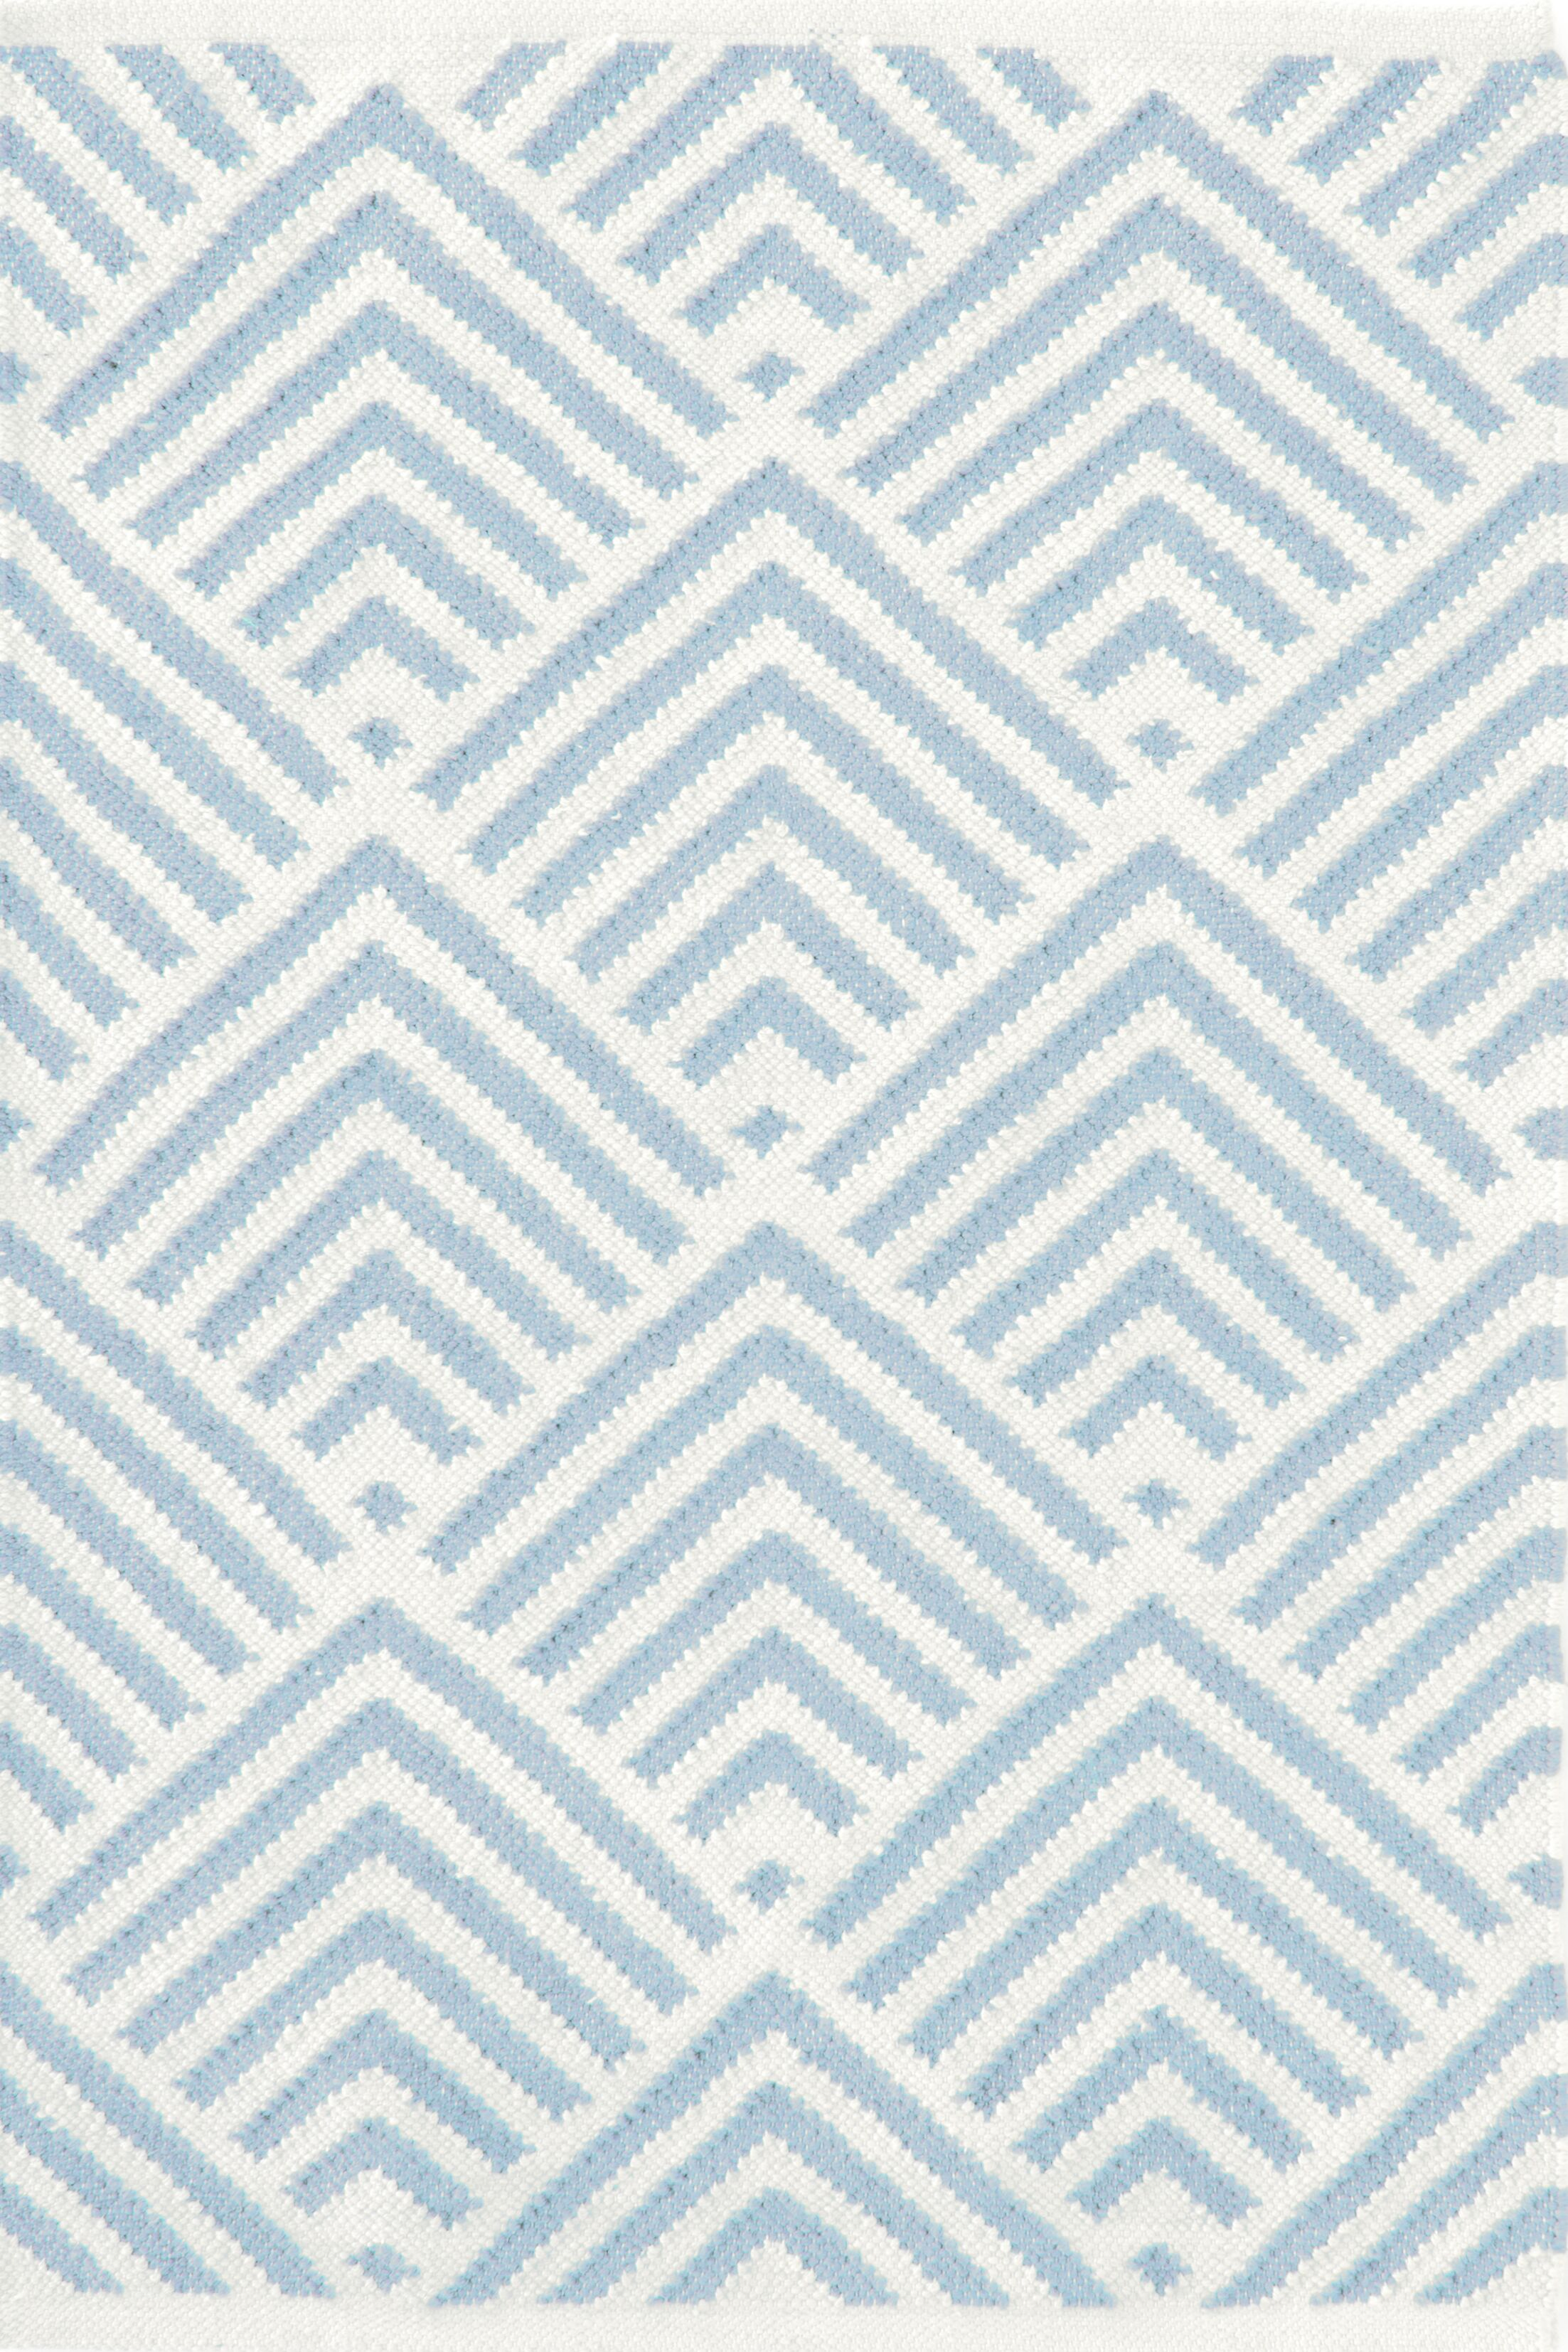 Cleo Blue & White Graphic Indoor/Outdoor Area Rug Rug Size: Rectangle 10' x 14'